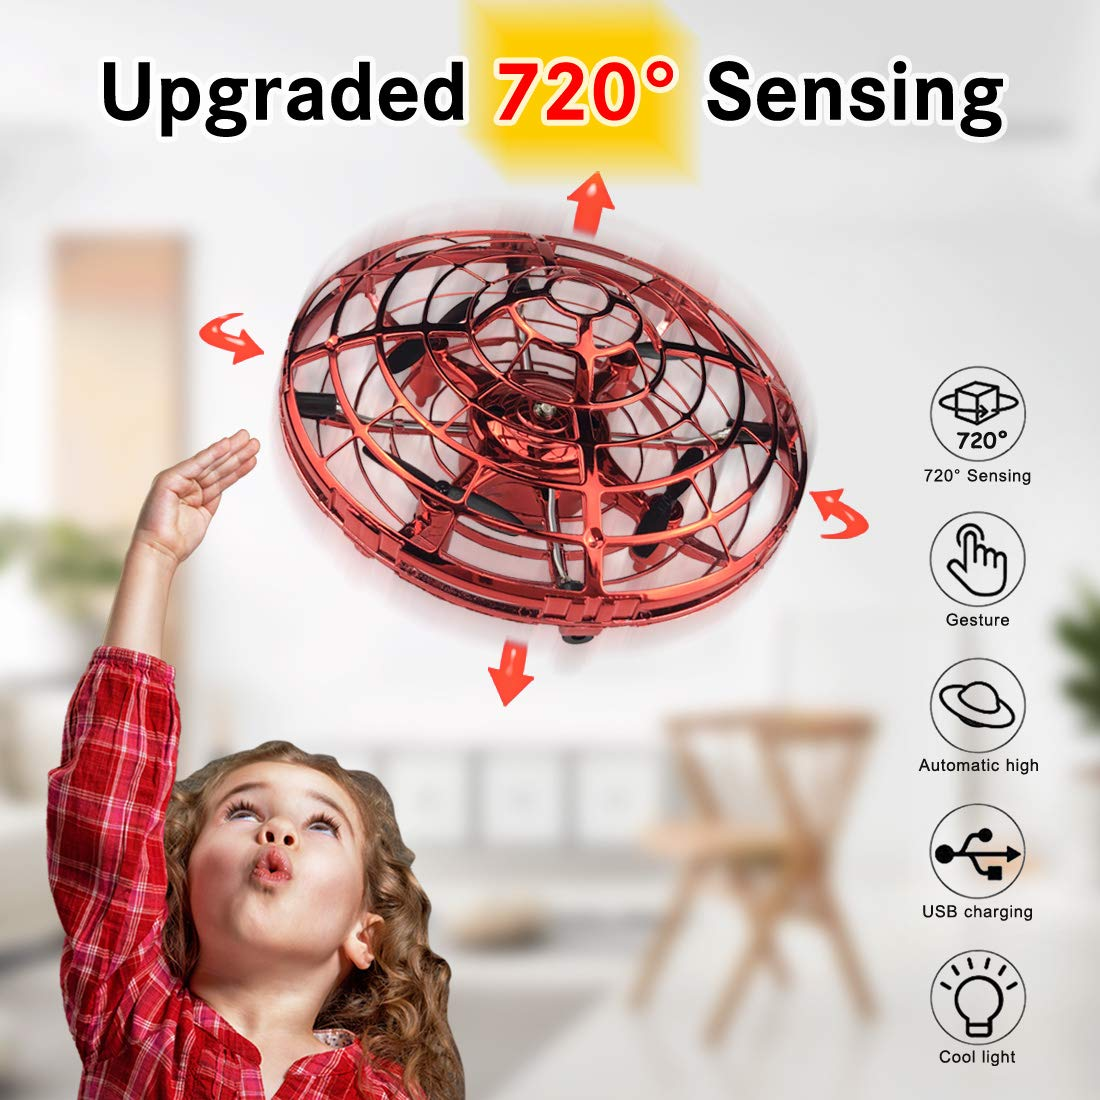 WEW Flying Ball Drone, Upgrade Hand Controlled Drone for Kids720°Omnidirectional Interactive Infrared Induction Helicopter 360°Rotating Ball with Shinning LED Lights Flying Toys for Boys Girls - Red